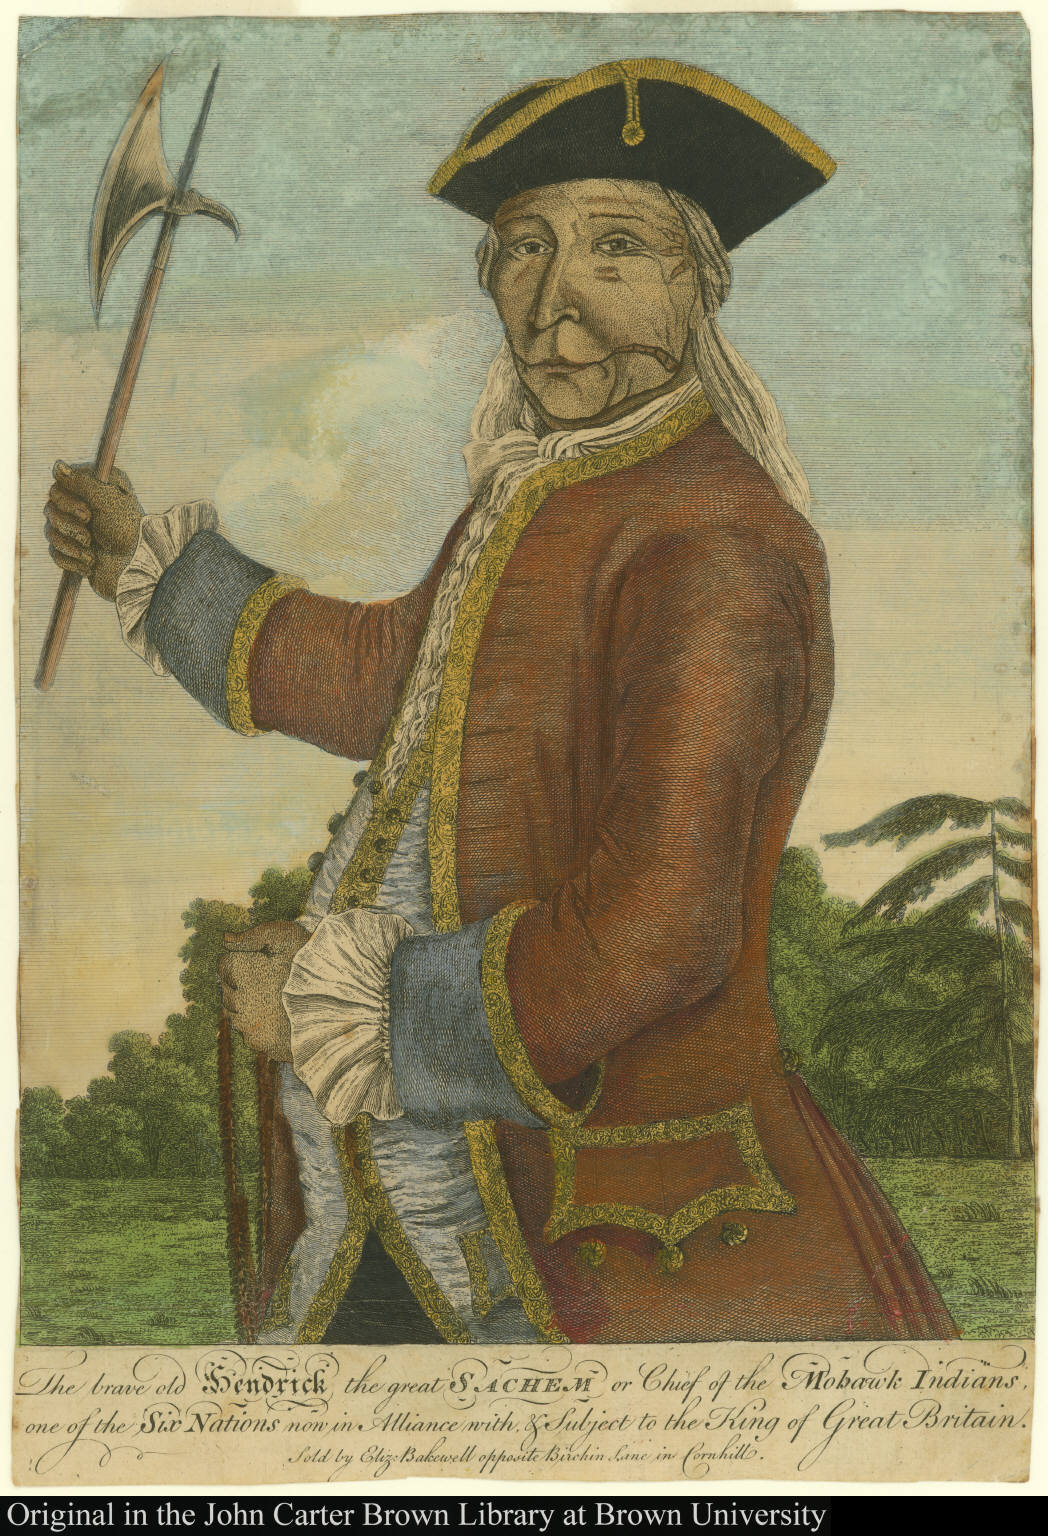 The brave old Hendrick the great Sachem or Chief of the Mohawk Indians, one of the Six Nations now in Alliance with & Subject to the King of Great Britain.